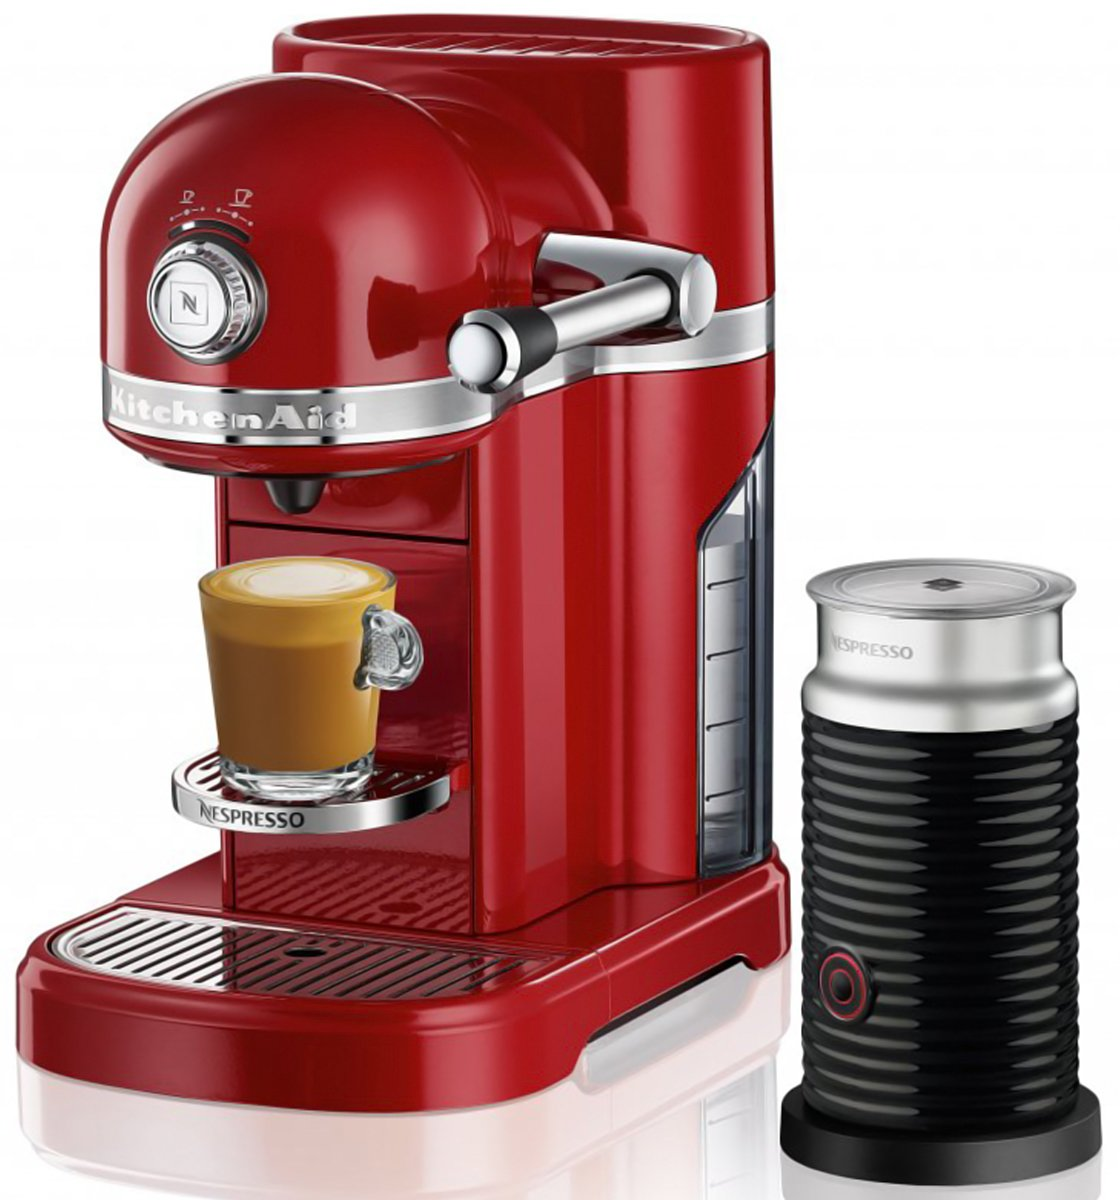 Kitchenaid 5kes0504aca Nespresso Coffee Machine Candy Apple Red